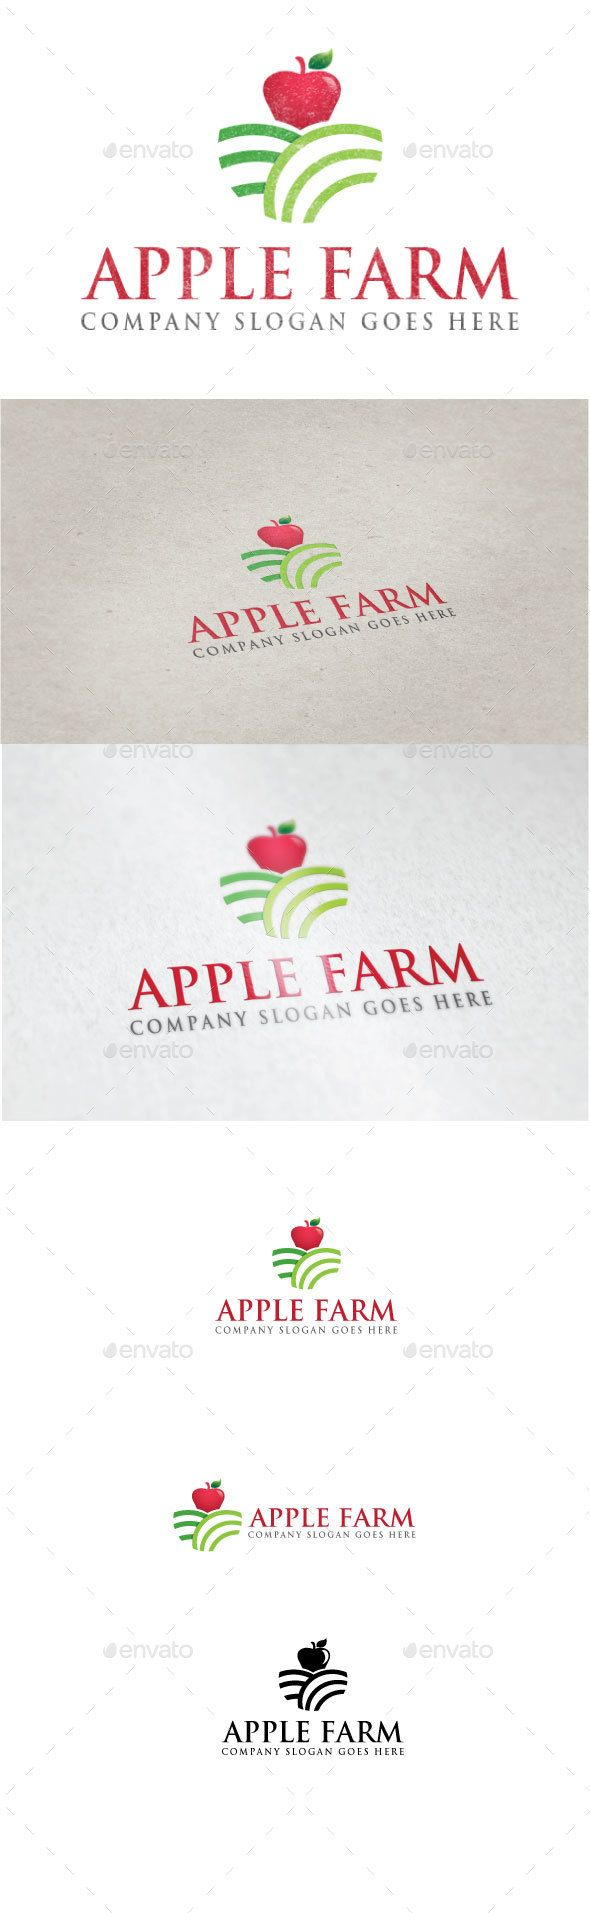 Apple Farm Logo by Goodigital Features: - eps and ai FILE - CMYK 300 DPI - FREE FONT USED - LAYERS ORGANIZED FONT trajan Asap Download: http://www.fontpalace.co